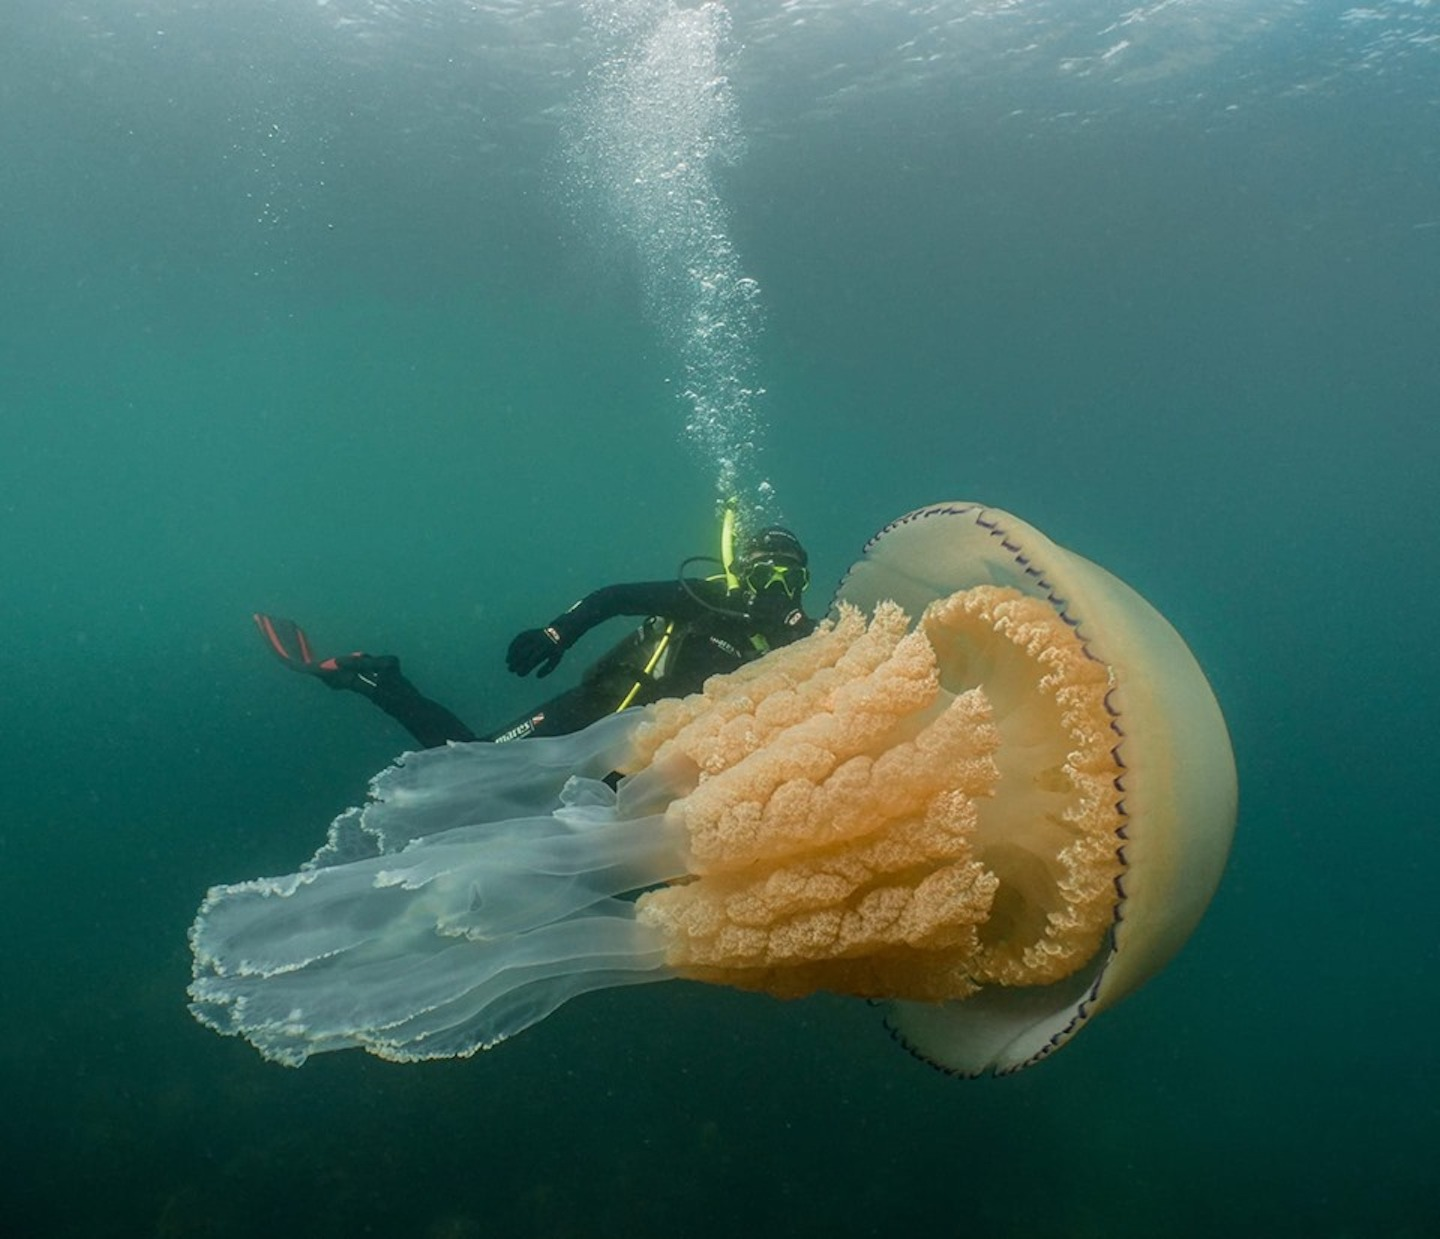 Rare Human-Sized Giant Jellyfish Caught On Camera - VICE